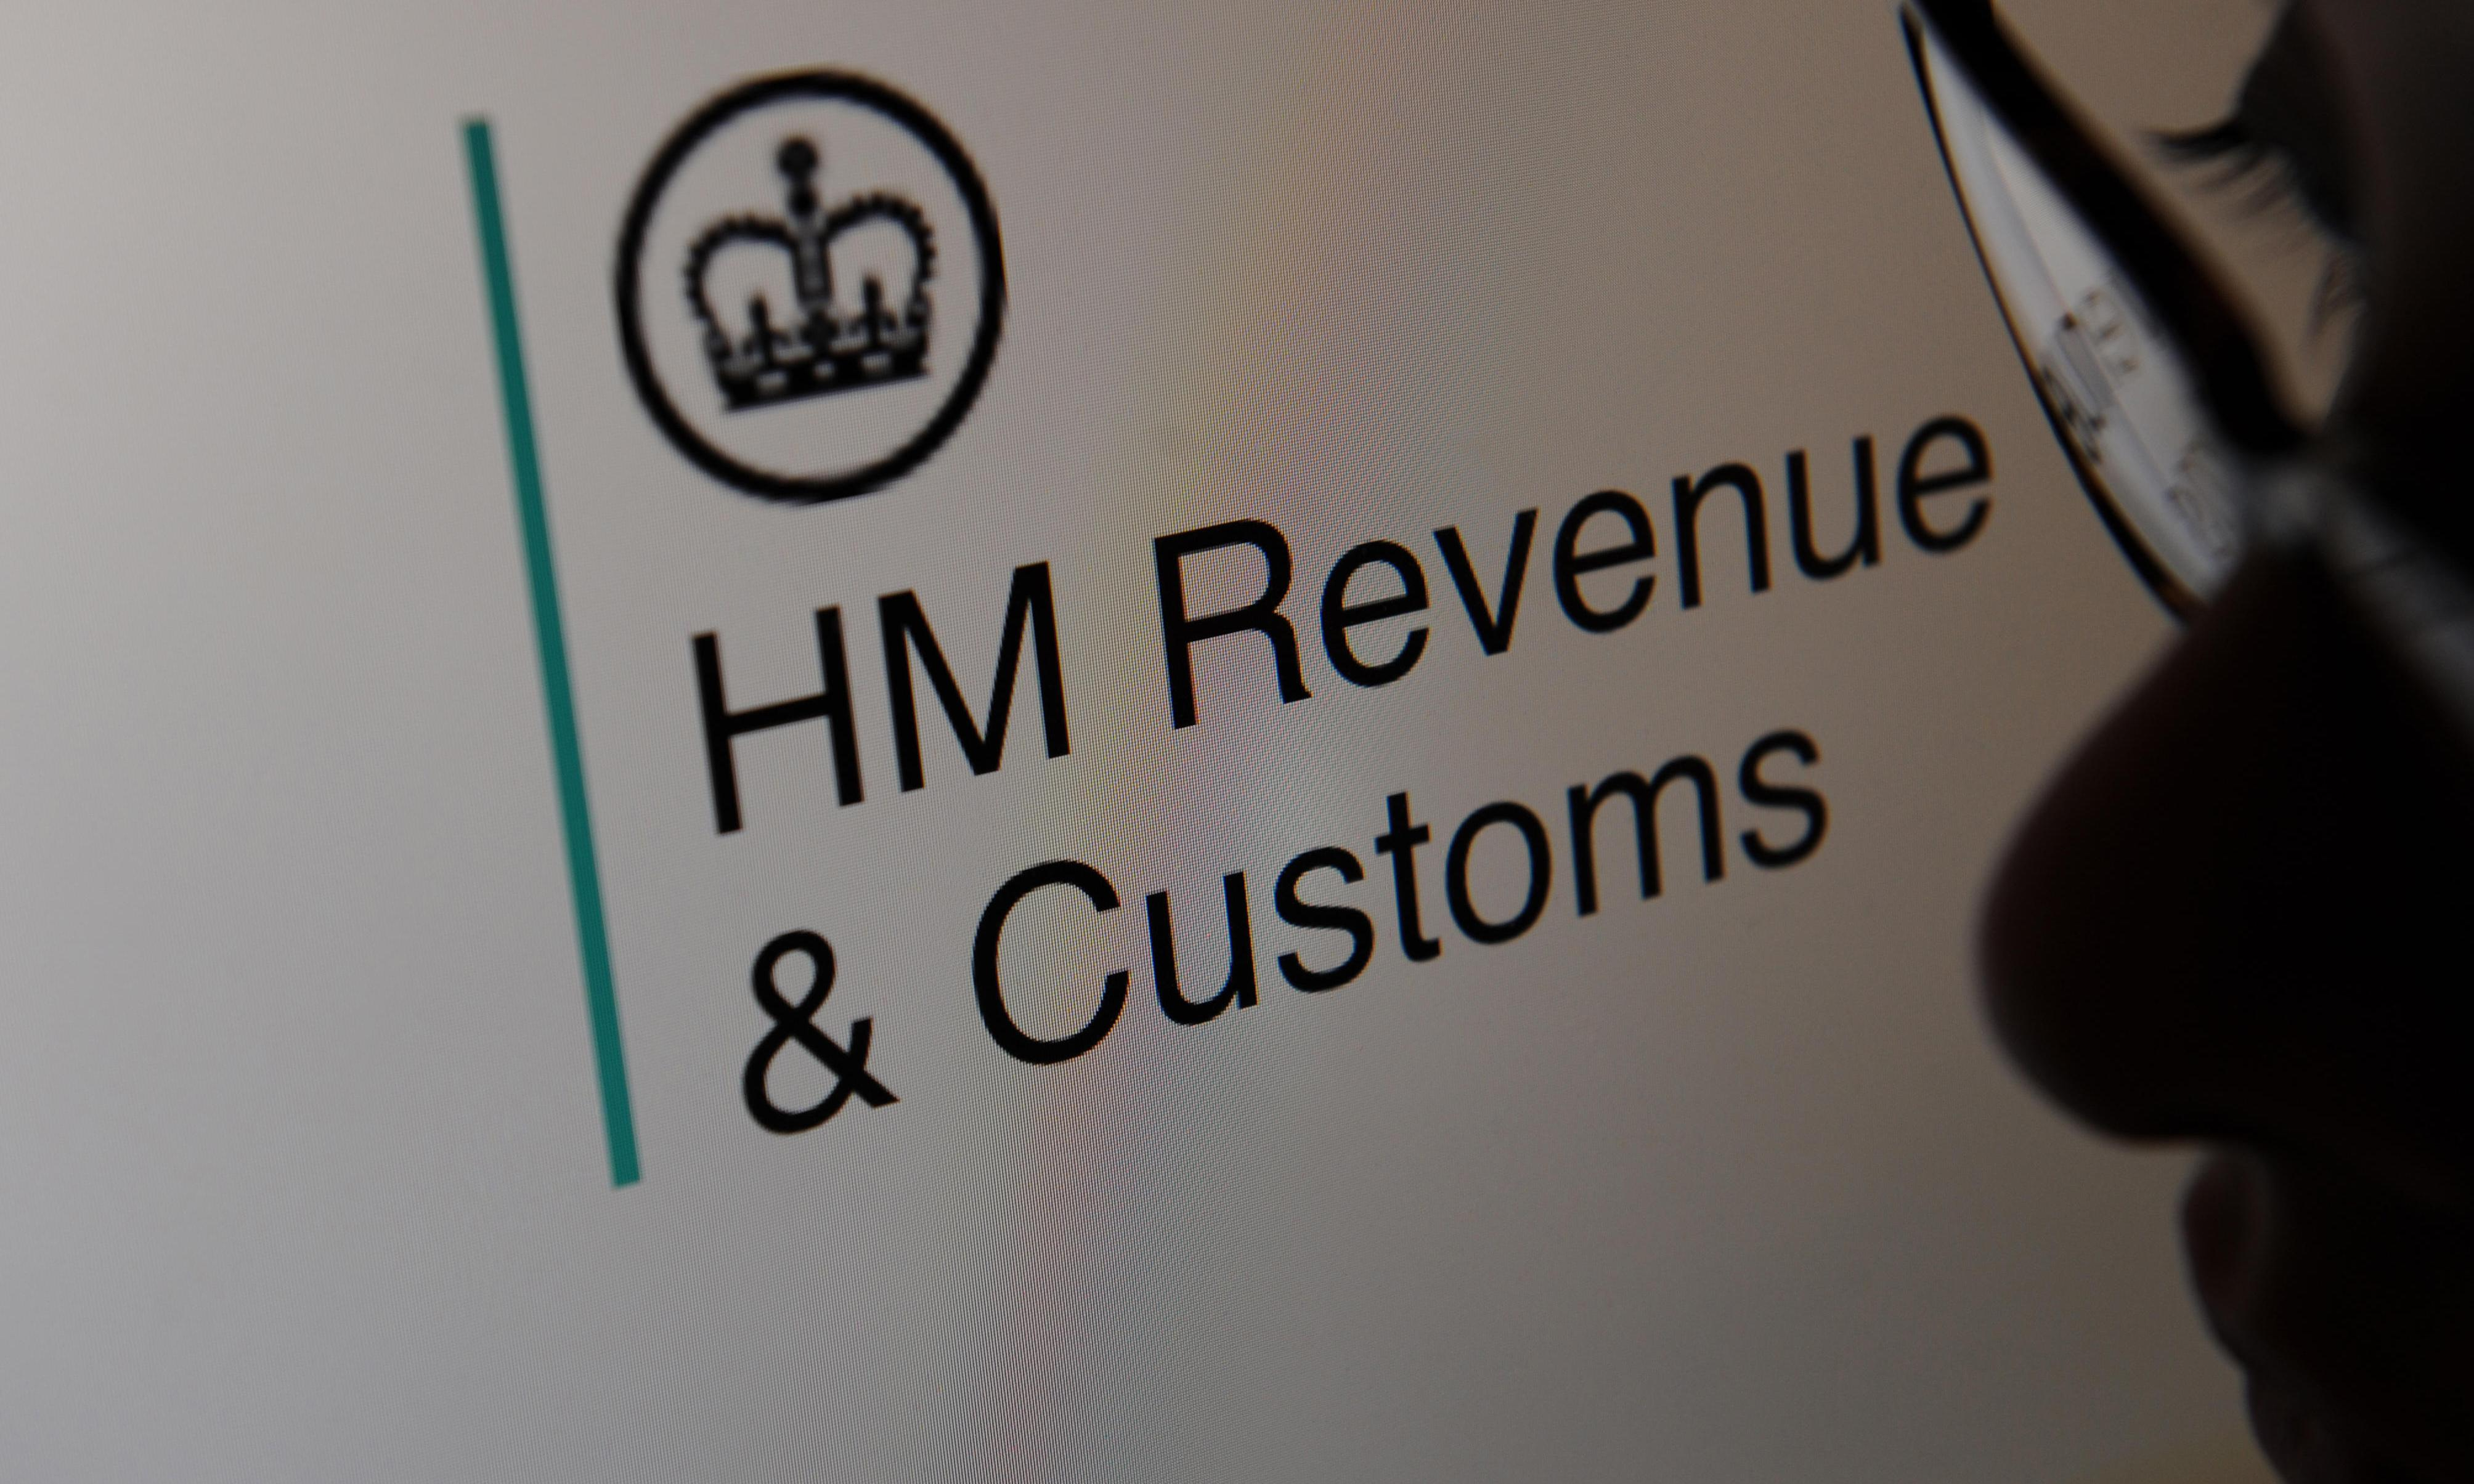 HMRC faces legal fight for handing Britons' data to US tax officials